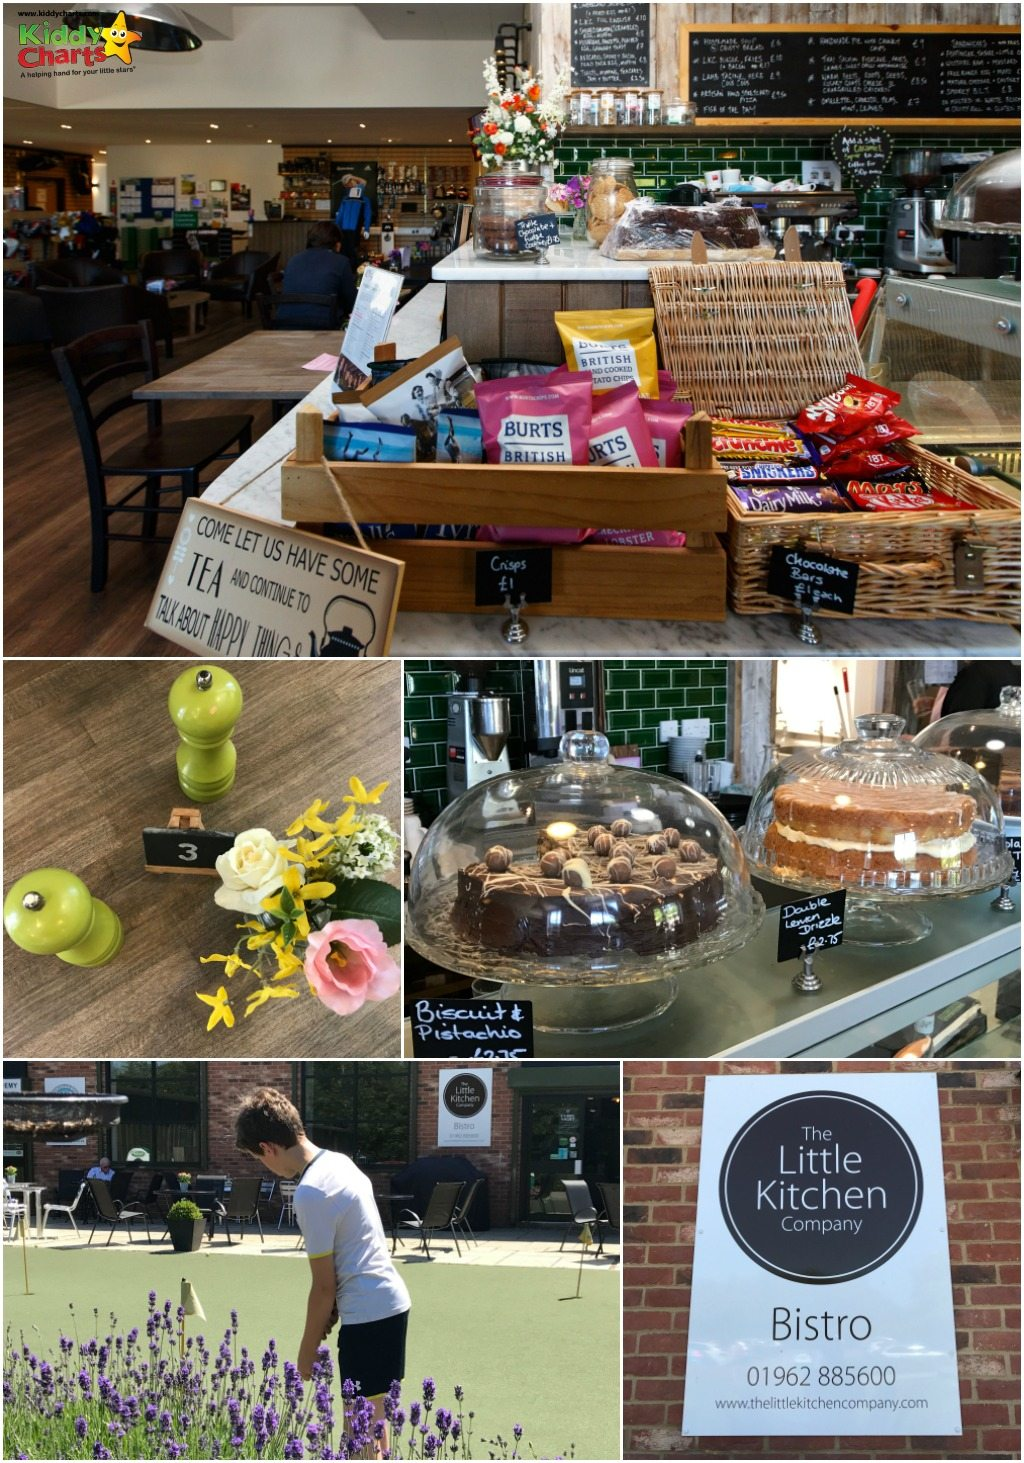 What did we think of the Little Kitchen Bistro Winchester for our family lunch? Read the blog to find out, and watch out for those cakes!